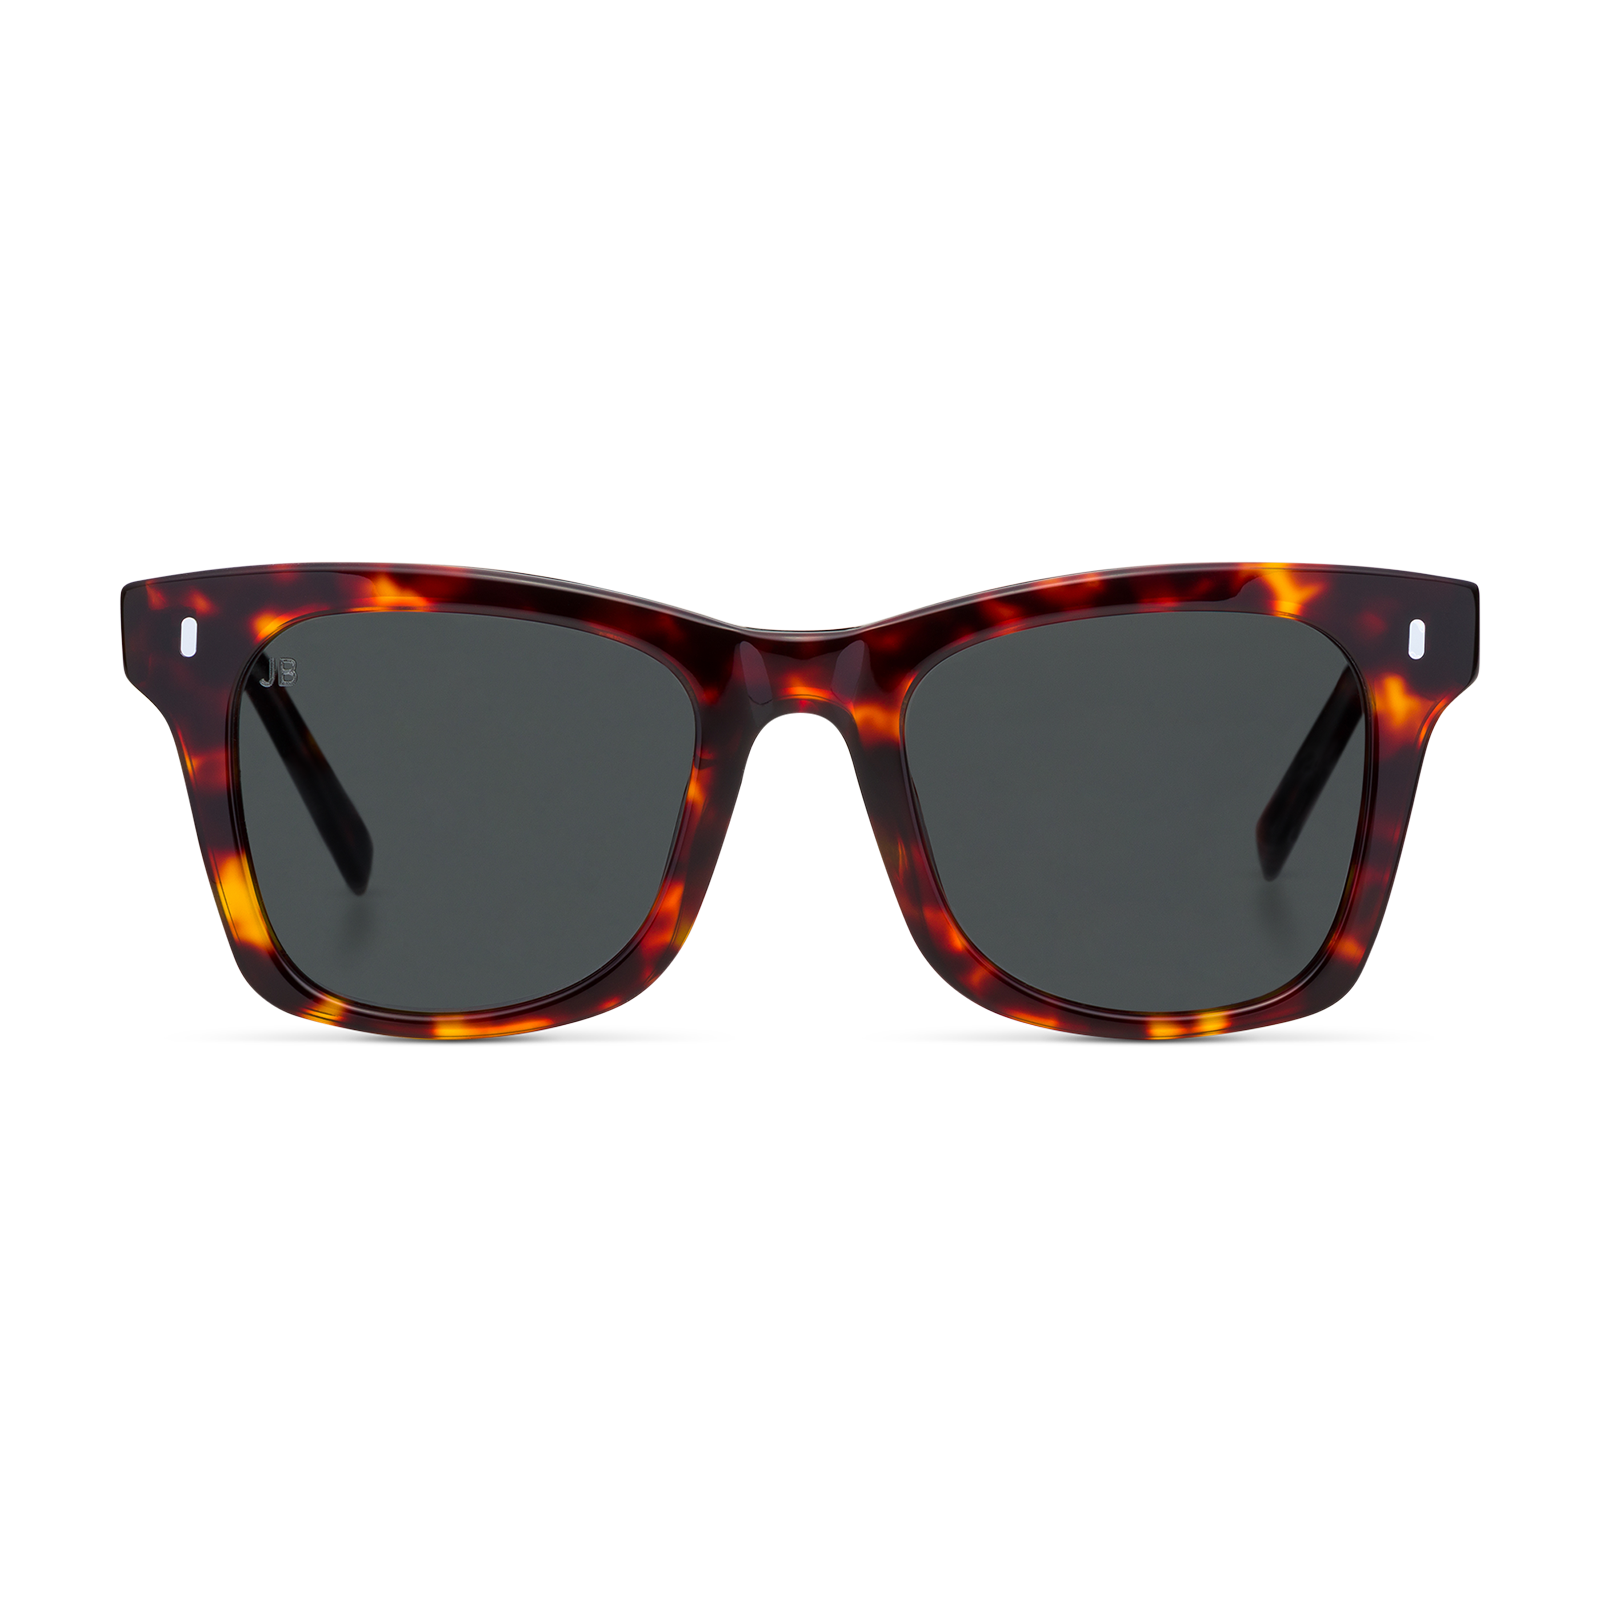 sunglasses product photo, spectacles product photo, optical instrument product photo, glasses product photo